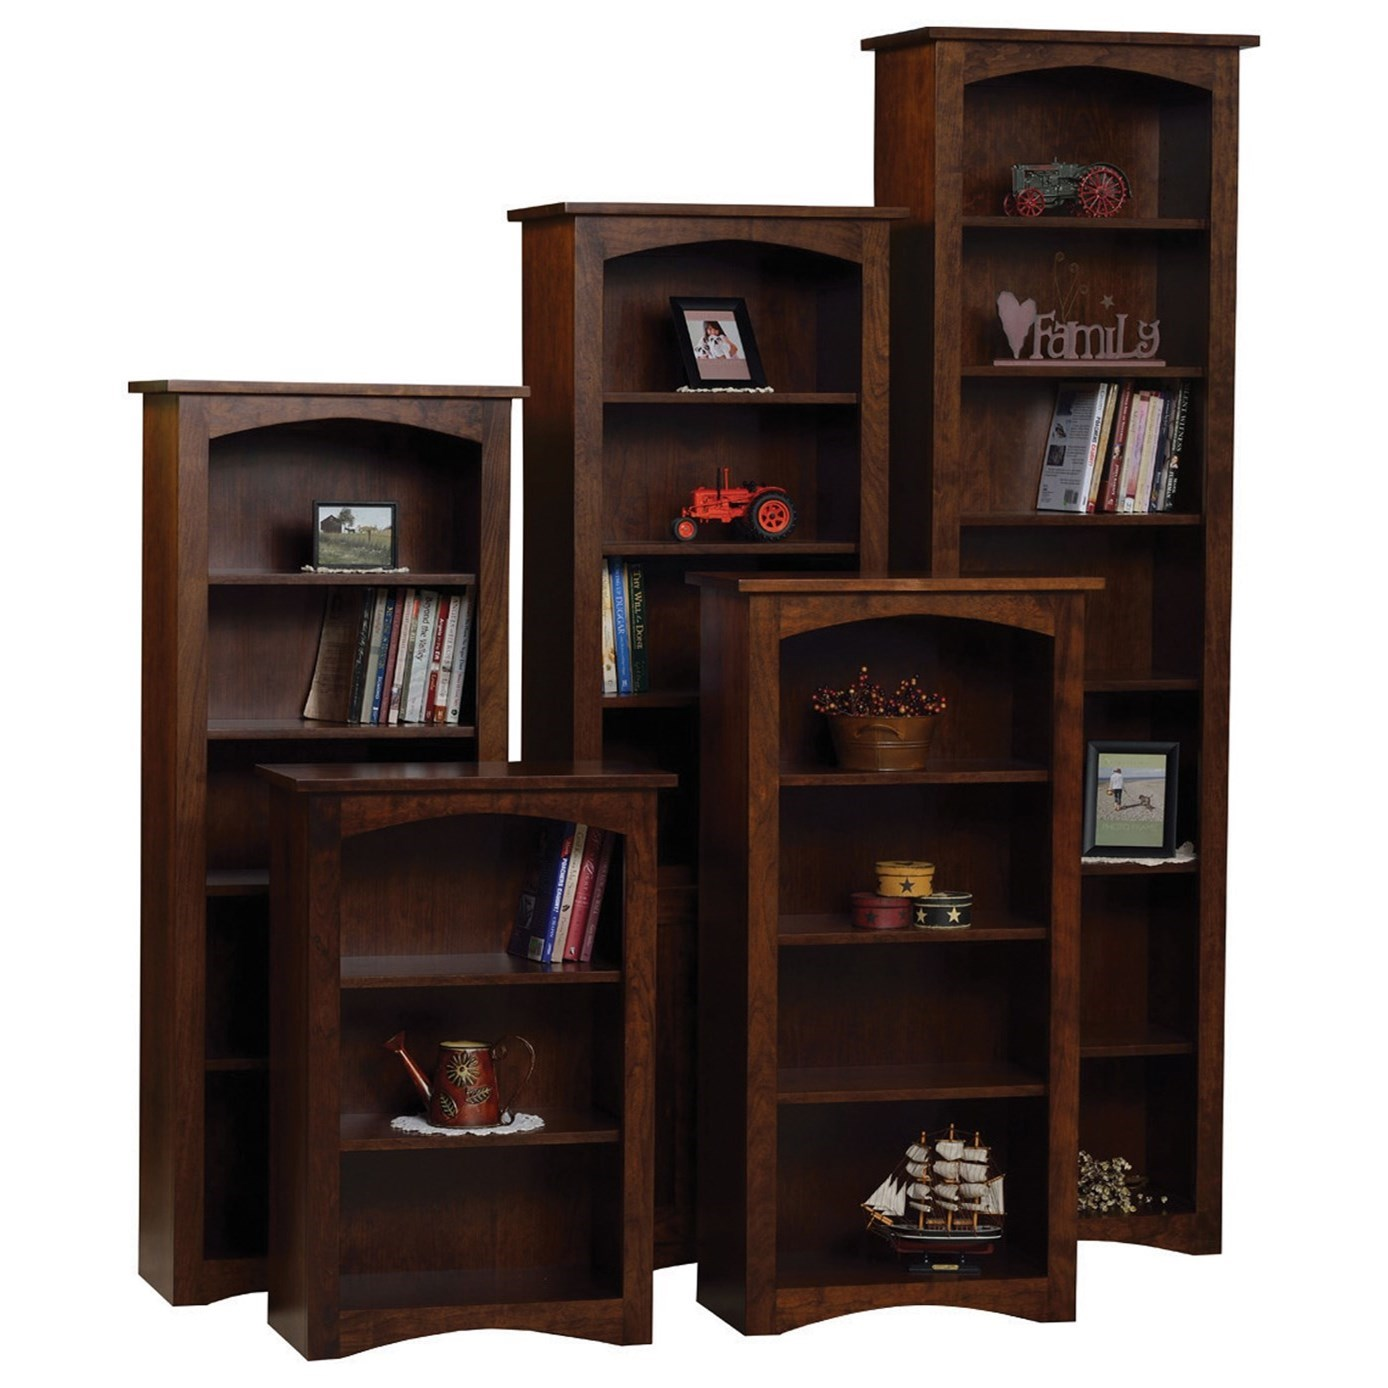 Shaker Customizable  Bookcase - Choose Your Size by Ashery Oak at Saugerties Furniture Mart